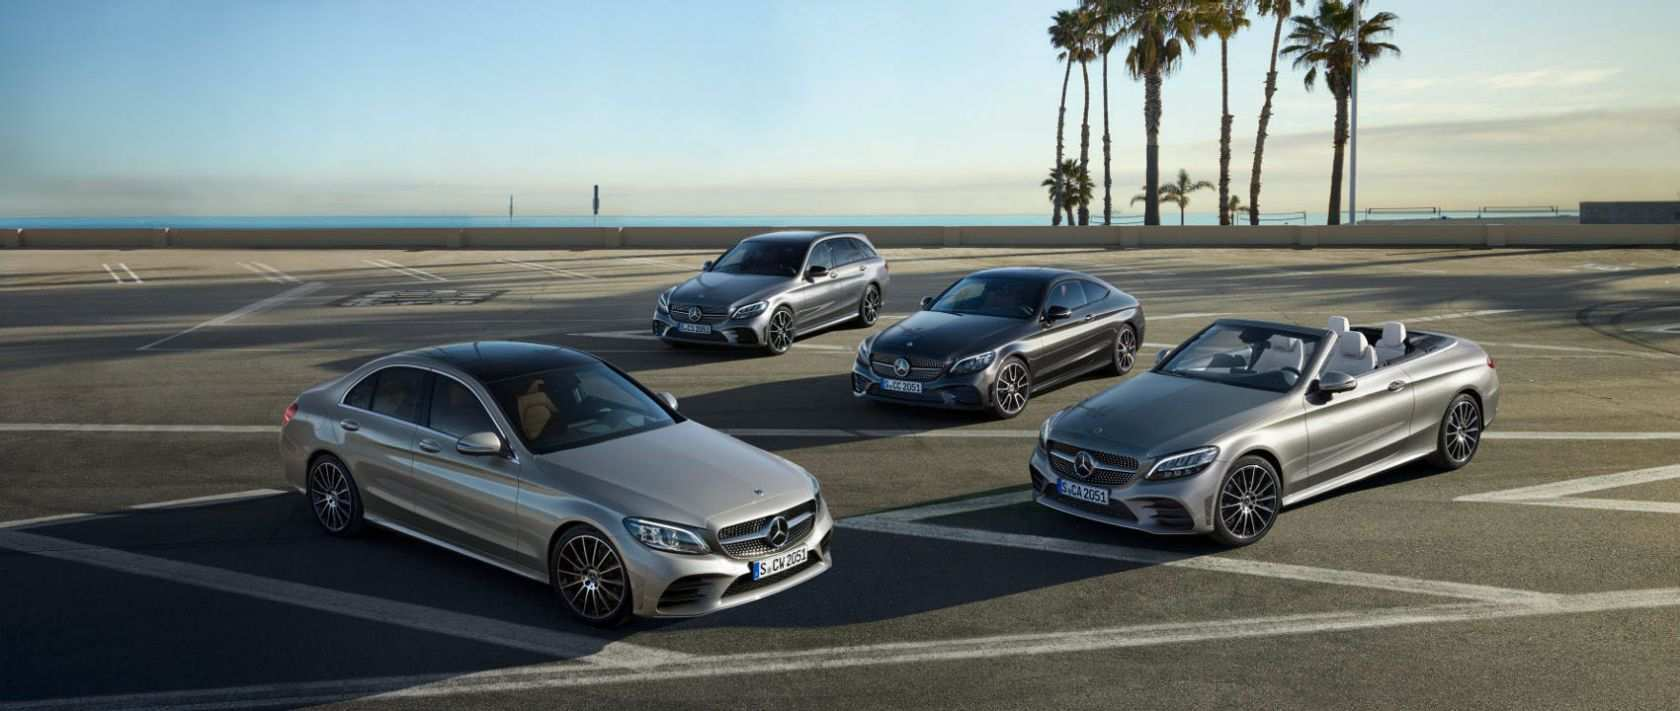 73 A The New Mercedes C Class 2019 Rumors